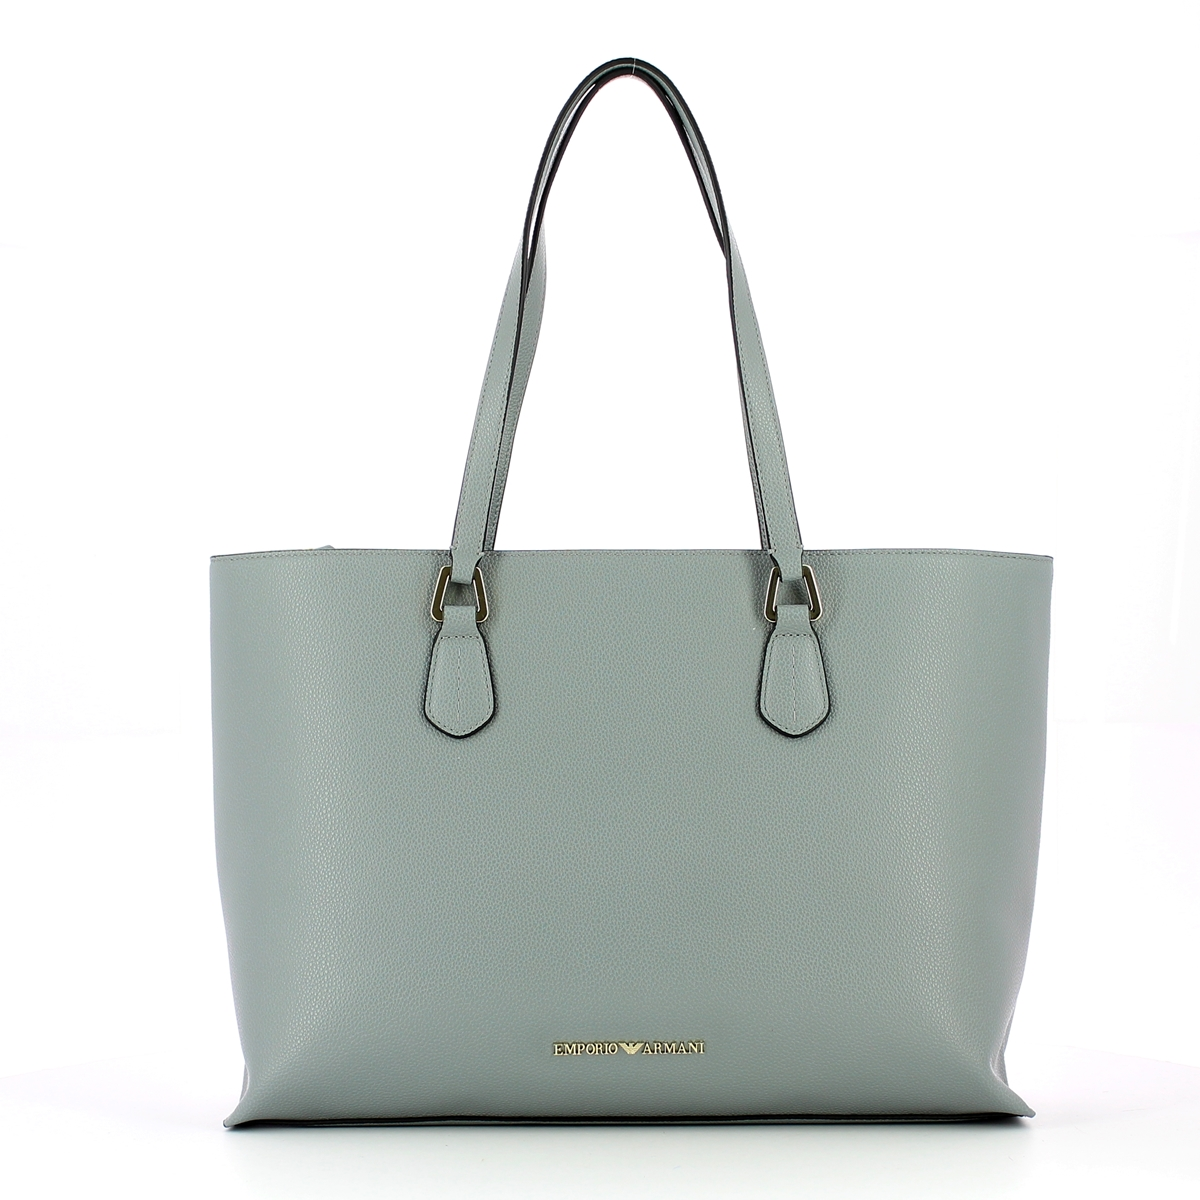 SHOPPING BAG 2351820